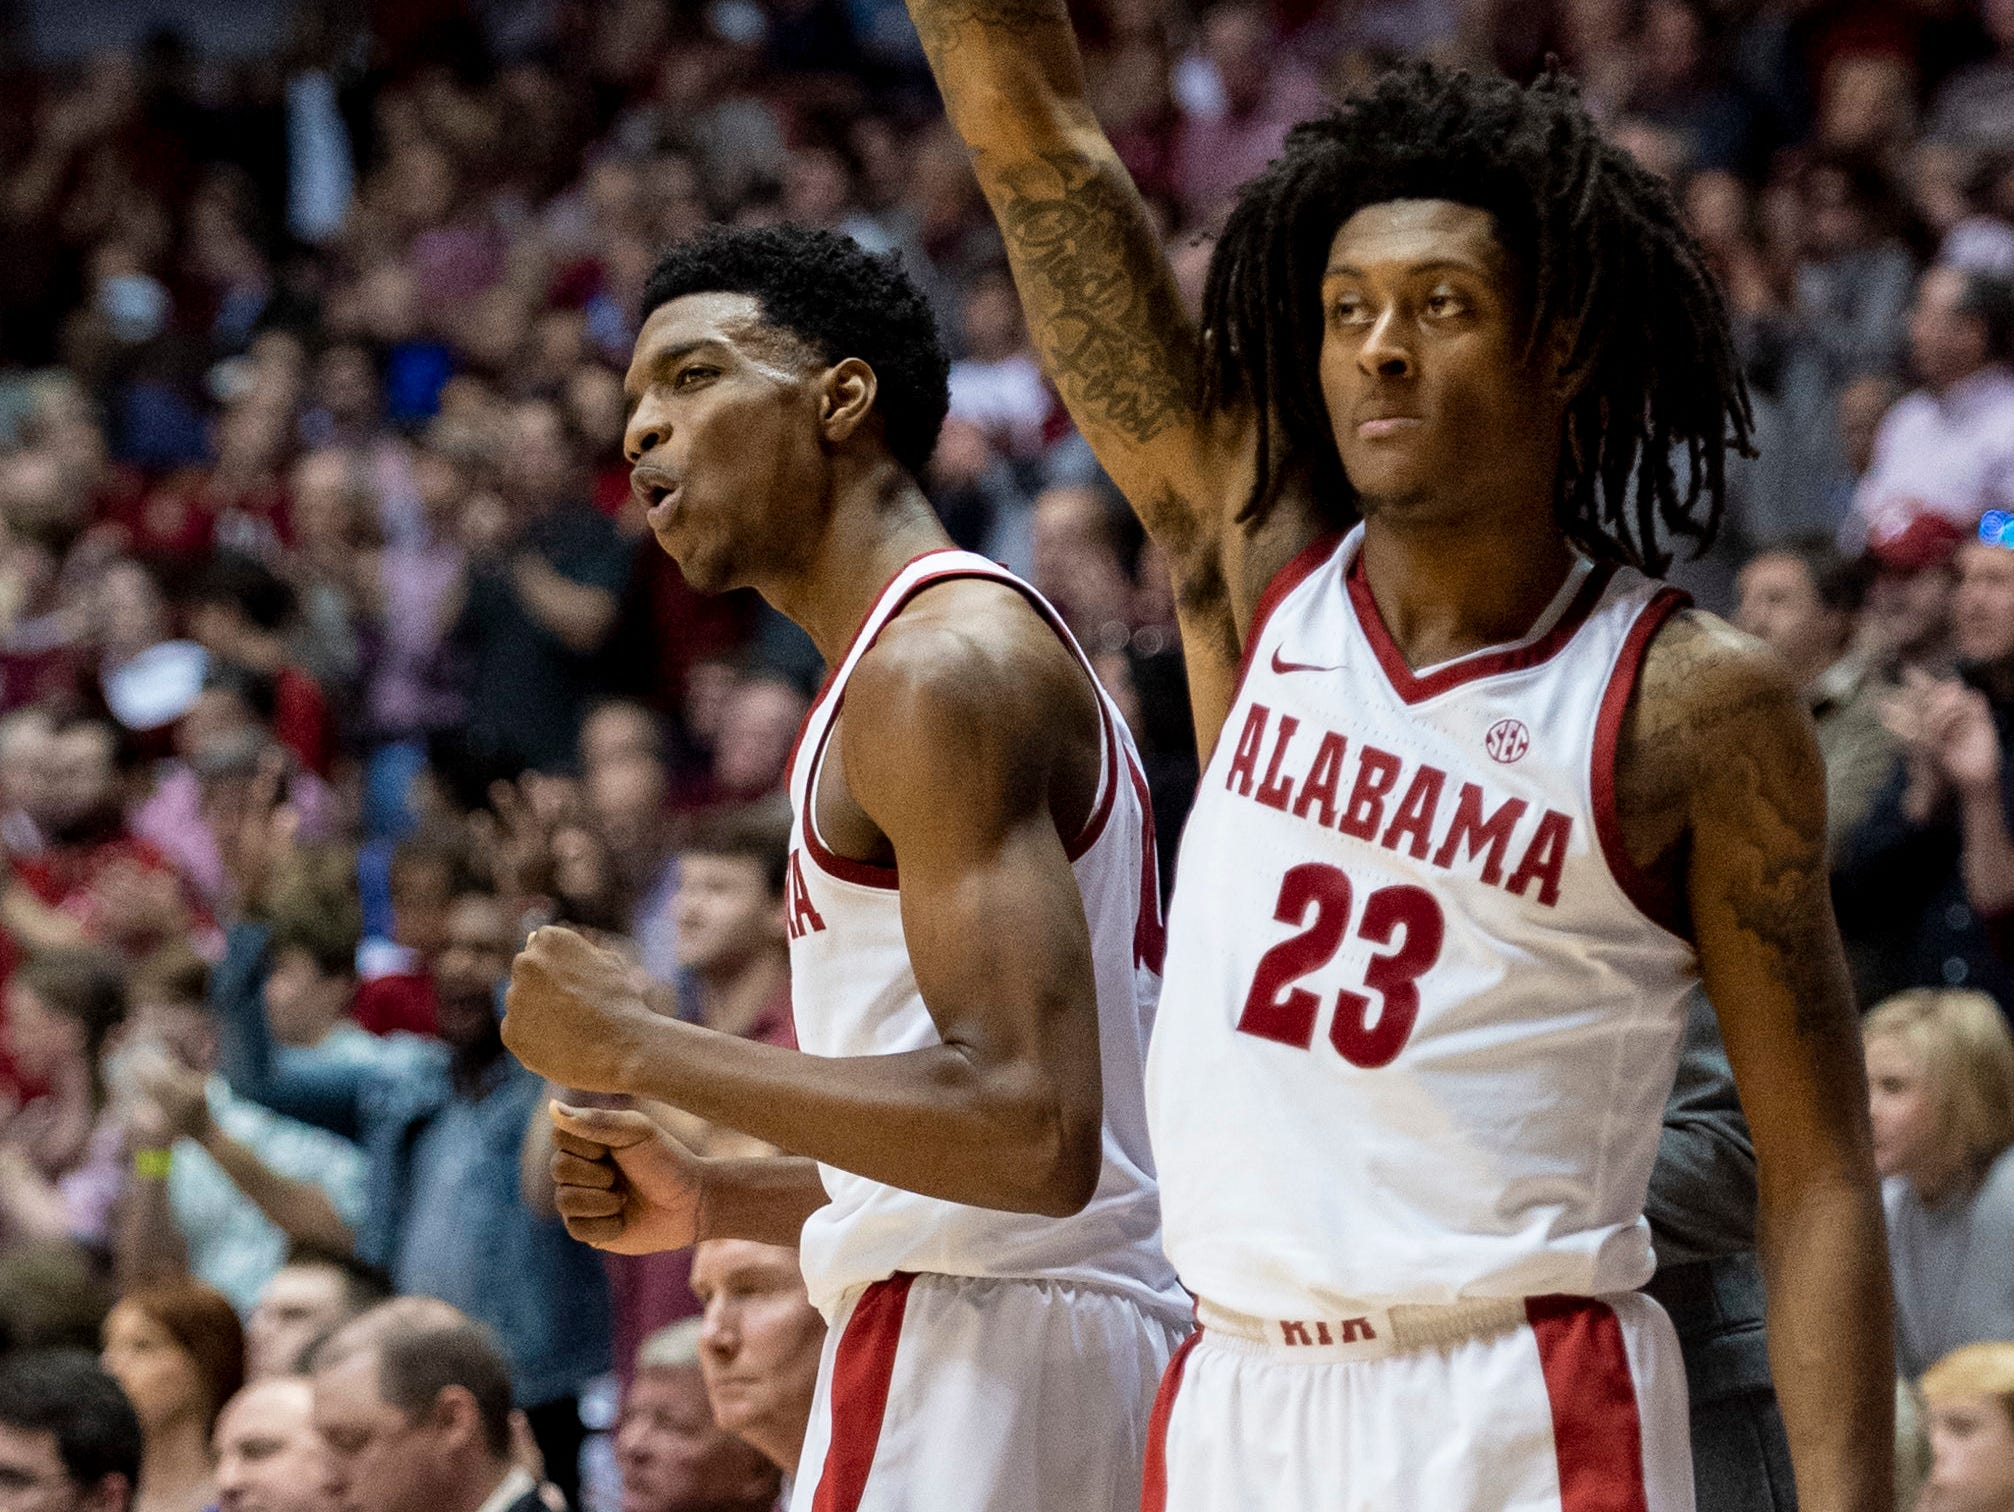 Alabama guards Herbert Jones (10) and John Petty (23) celebrate a three-pointer during the second half of an NCAA college basketball game against Kentucky, Saturday, Jan. 5, 2019, in Tuscaloosa, Ala.